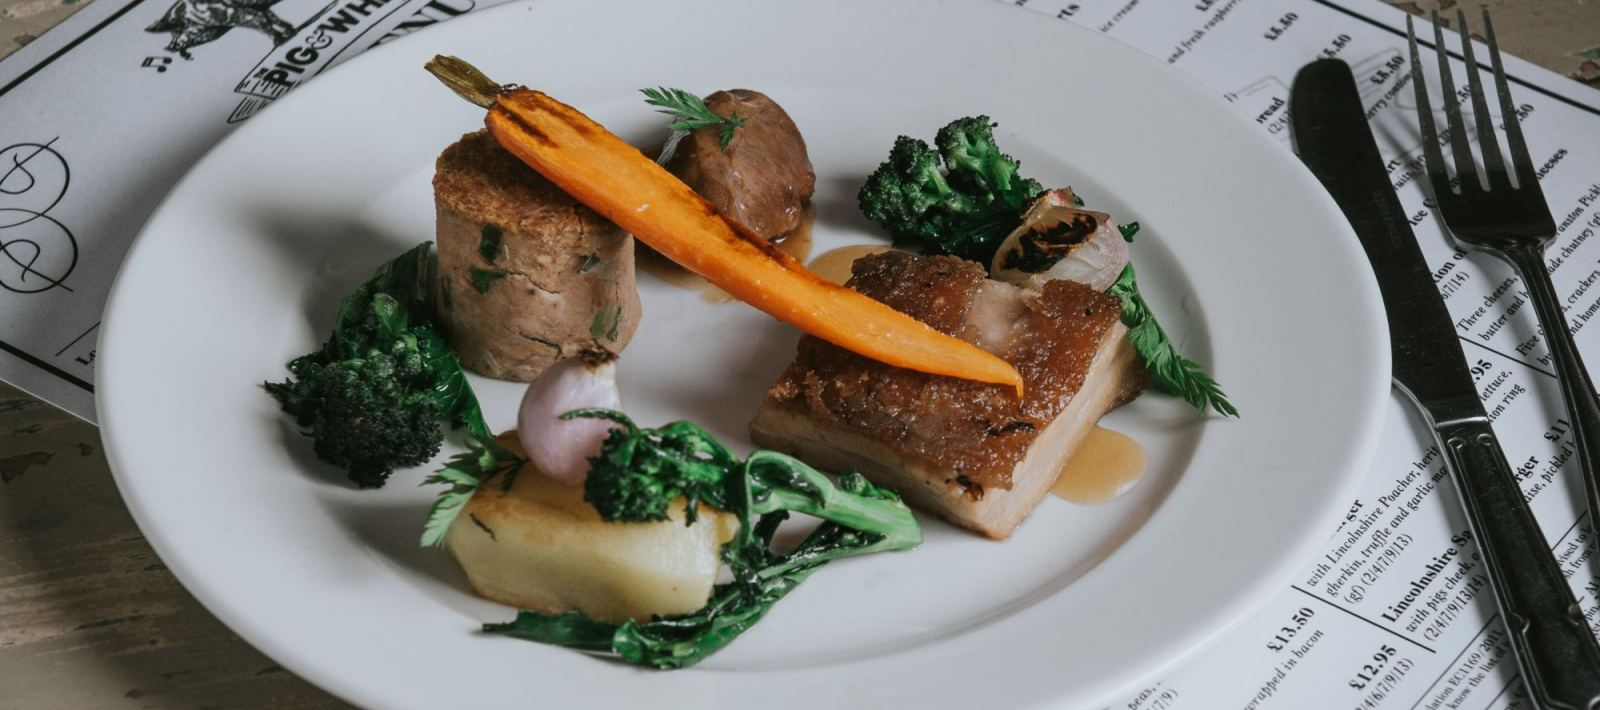 Belly and Cheek of Pork by Steven Bennett The Lincolnshire Chef at Healing Manor Hotel near Grimsby